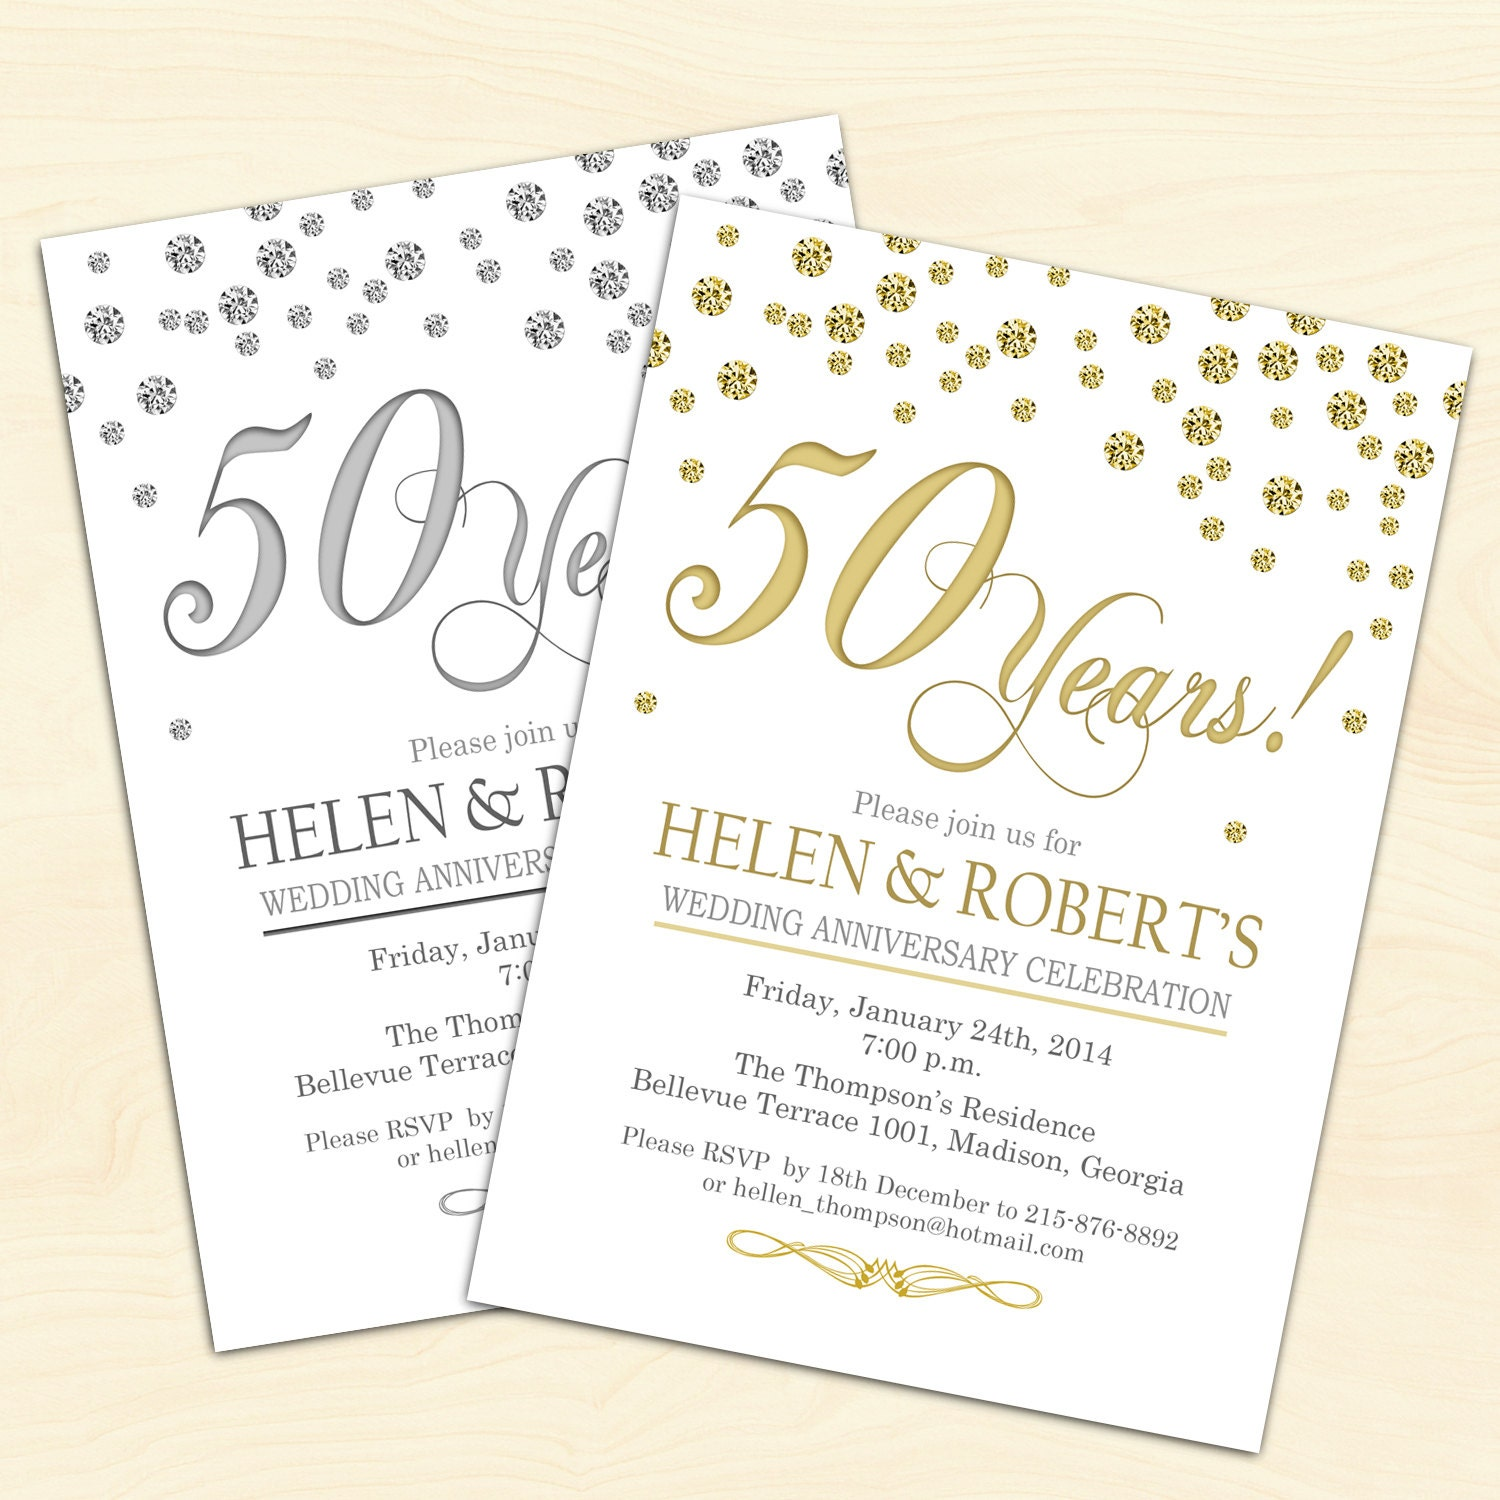 Golden Wedding Anniversary Invitations Wording: 50th Wedding Anniversary Invitation / Confetti / Gold / White